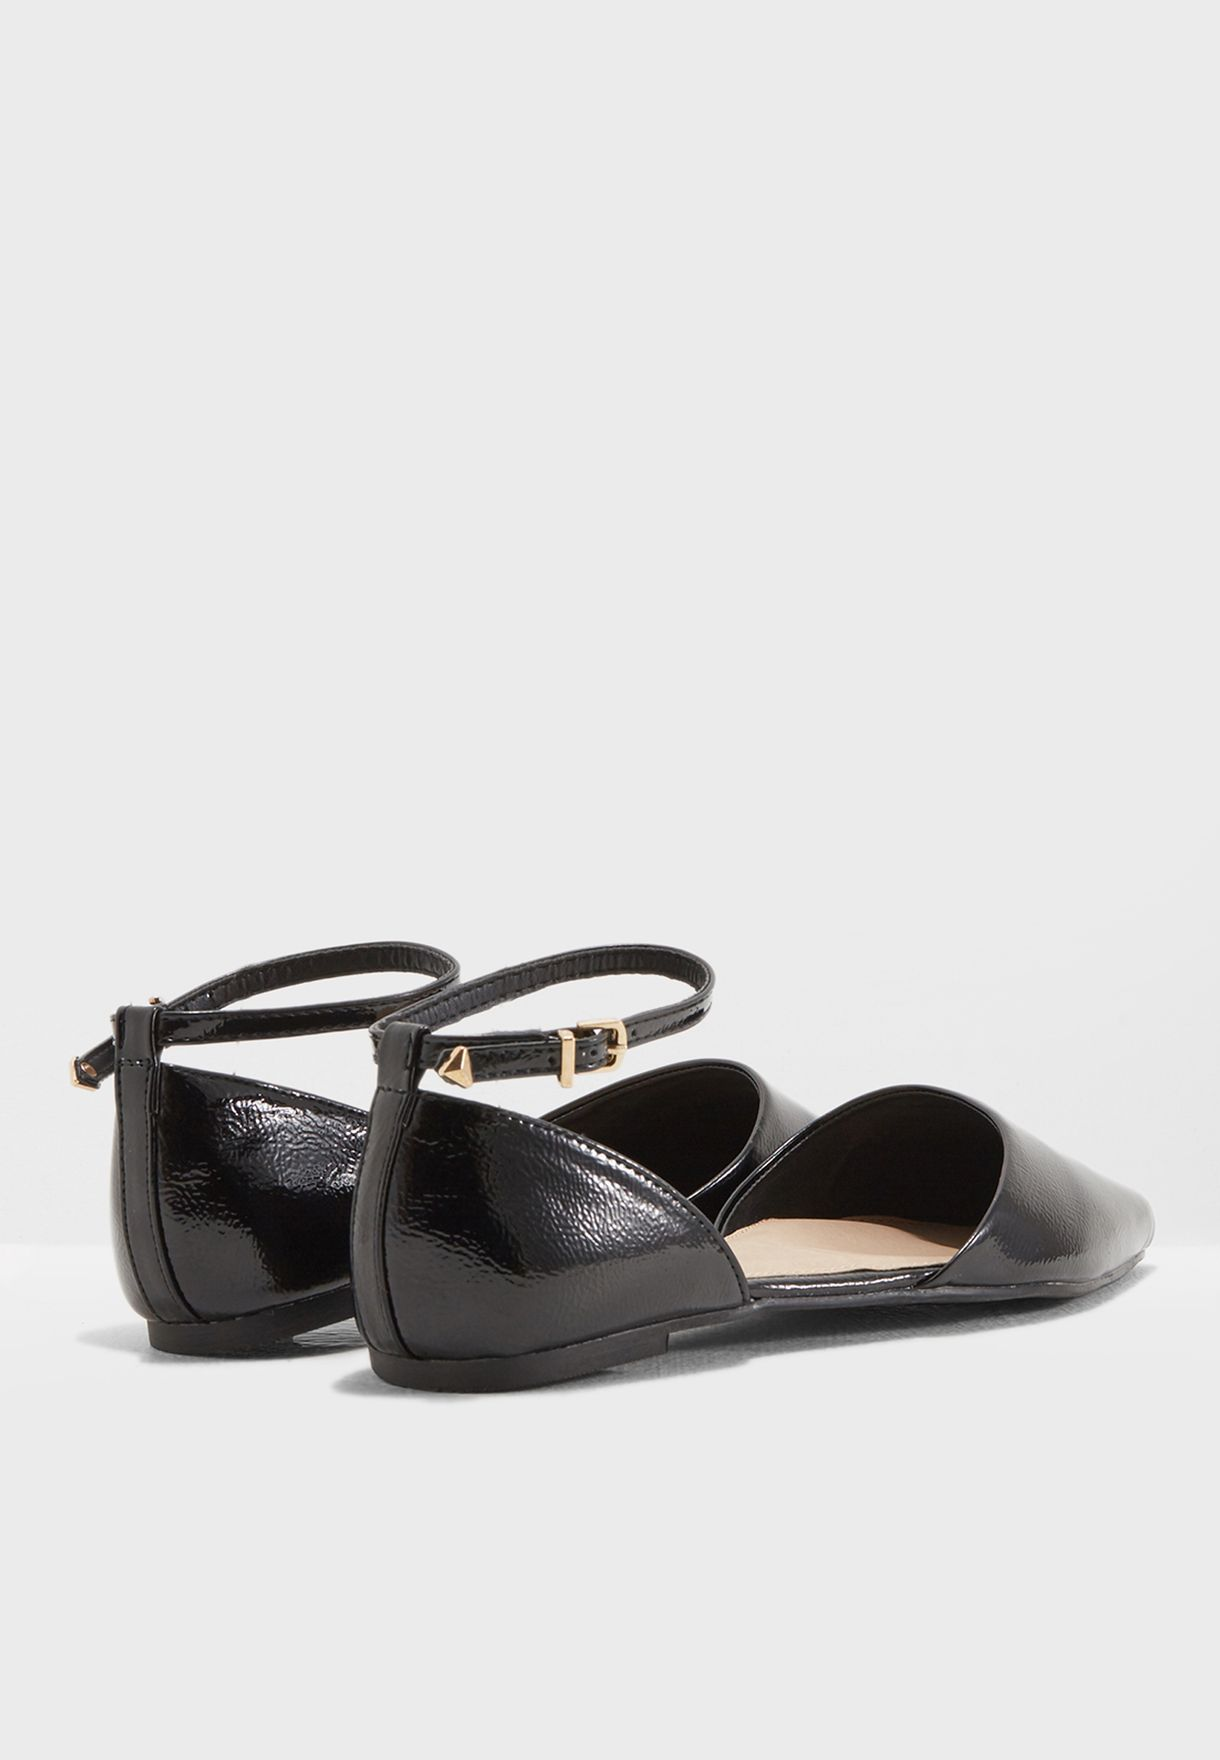 f54742fdc47 Shop Topshop black Annie Pointed Shoes 42A37MBLK for Women in Qatar ...